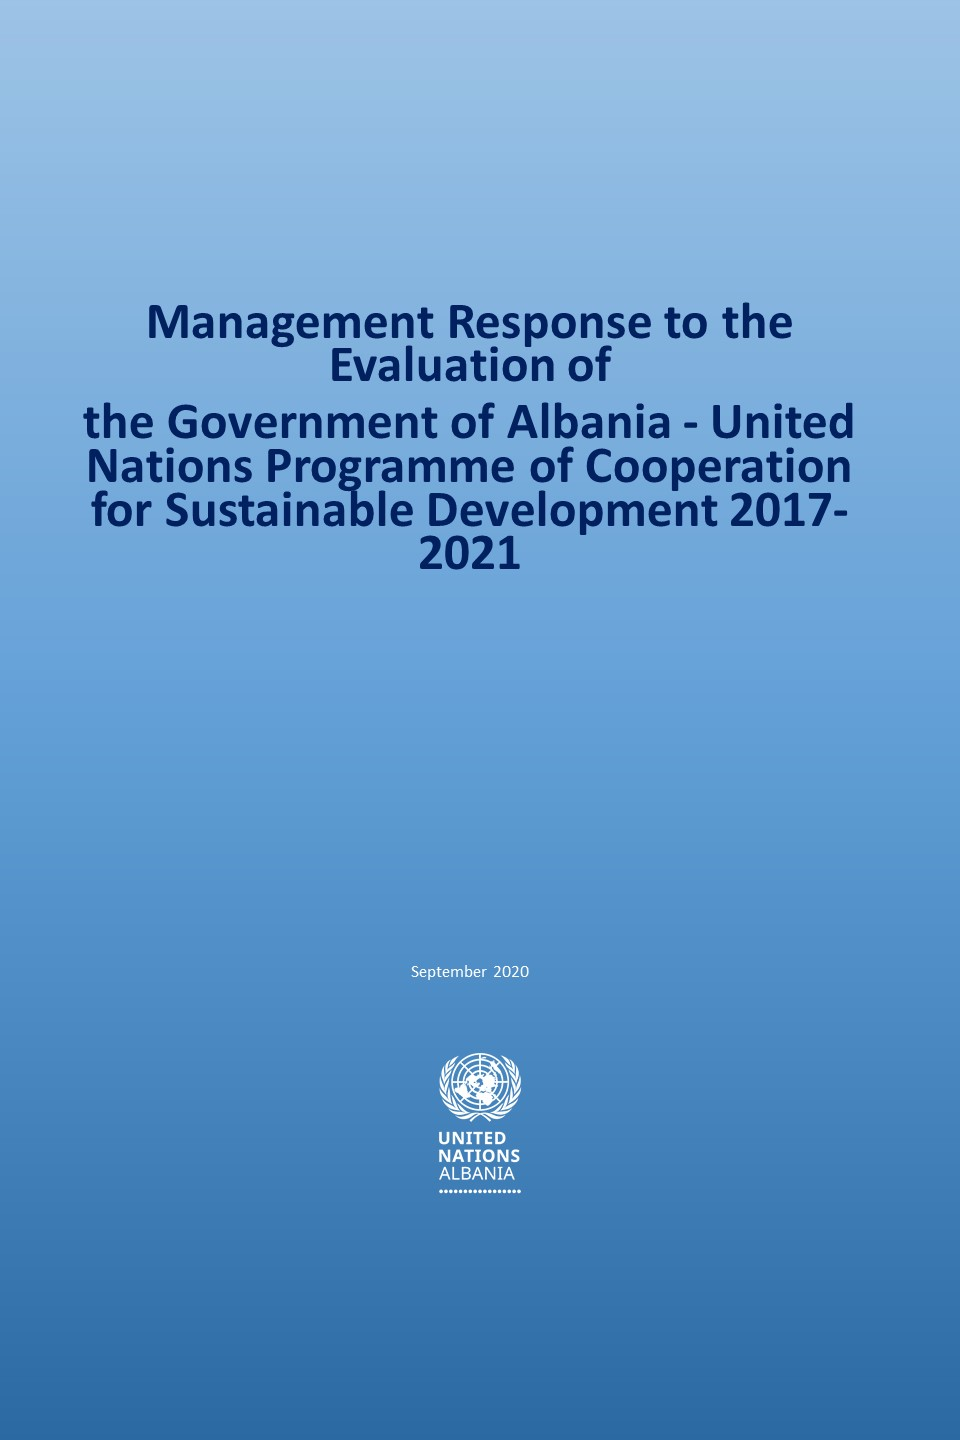 Management Response to the Evaluation of the Government of Albania - United Nations Programme of Cooperation for Sustainable Development 2017-2021 Issued on September 2020